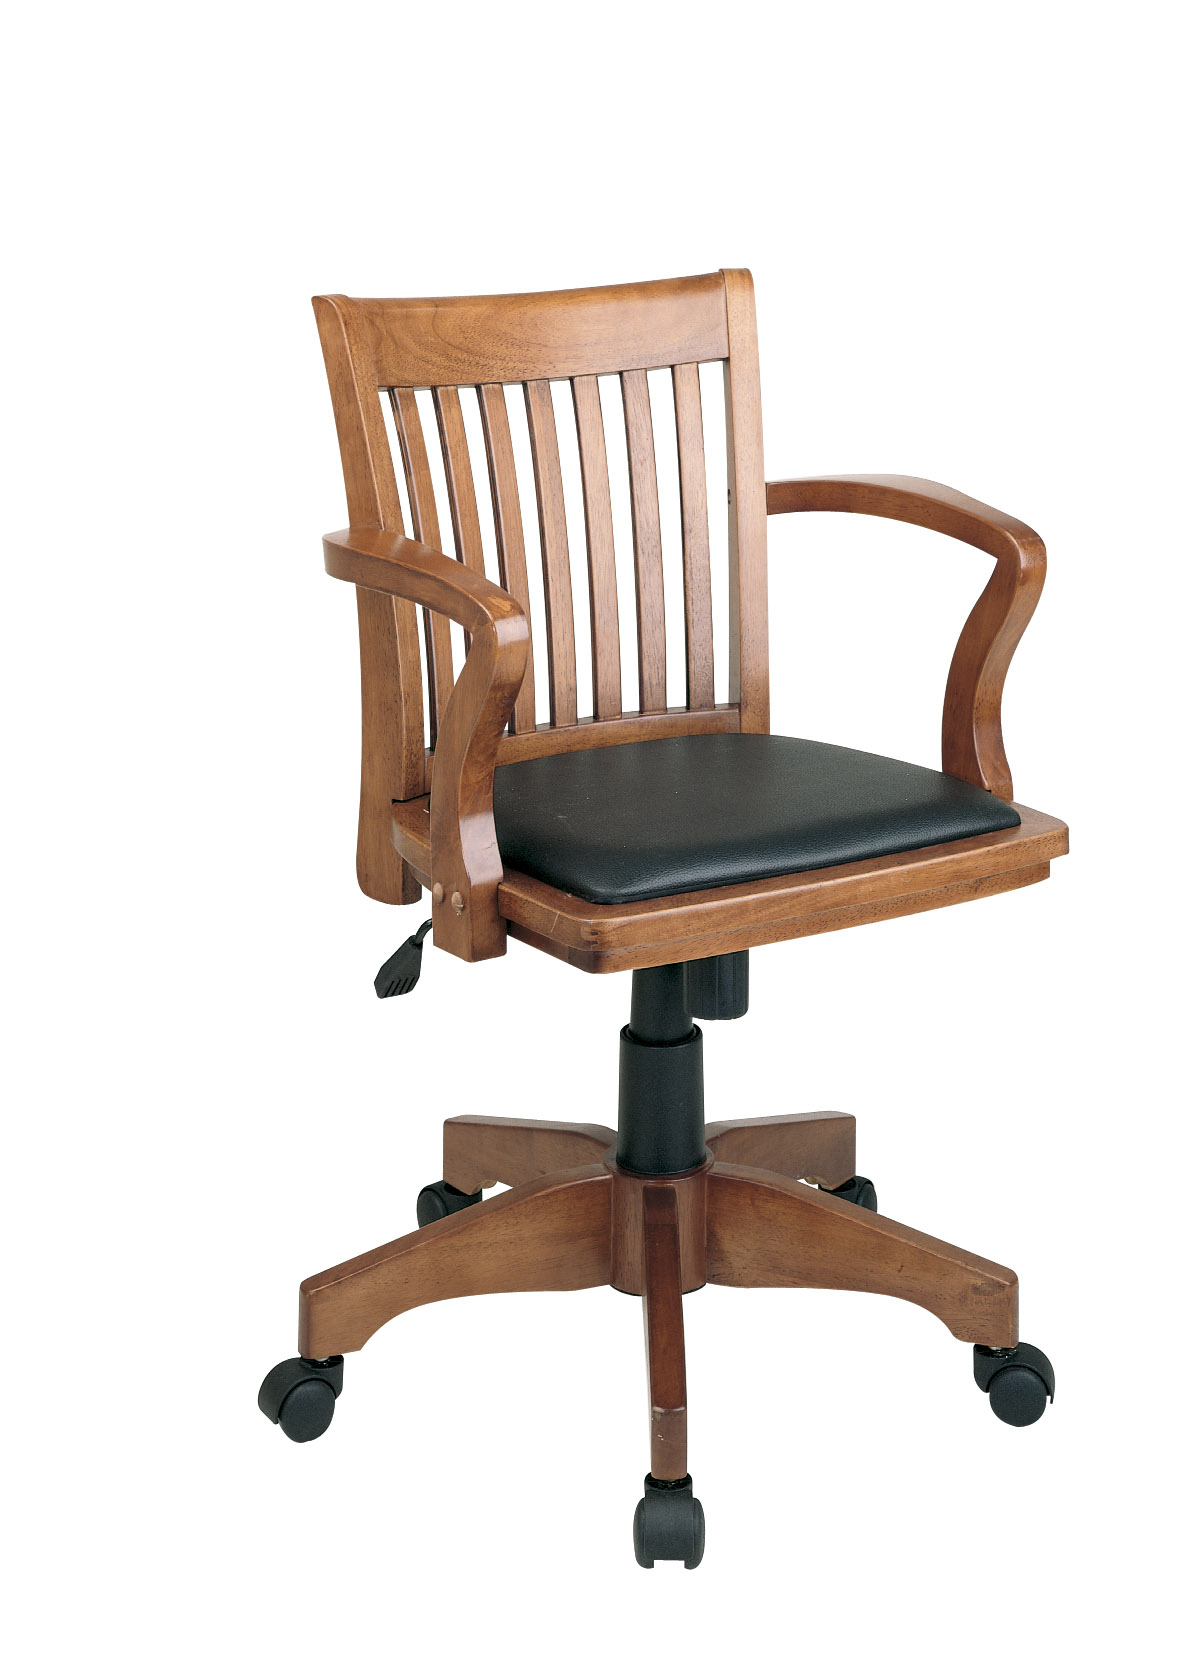 Wood Bankers Chair Osp Designs Deluxe Wood Banker 39s Chair With Vinyl Padded